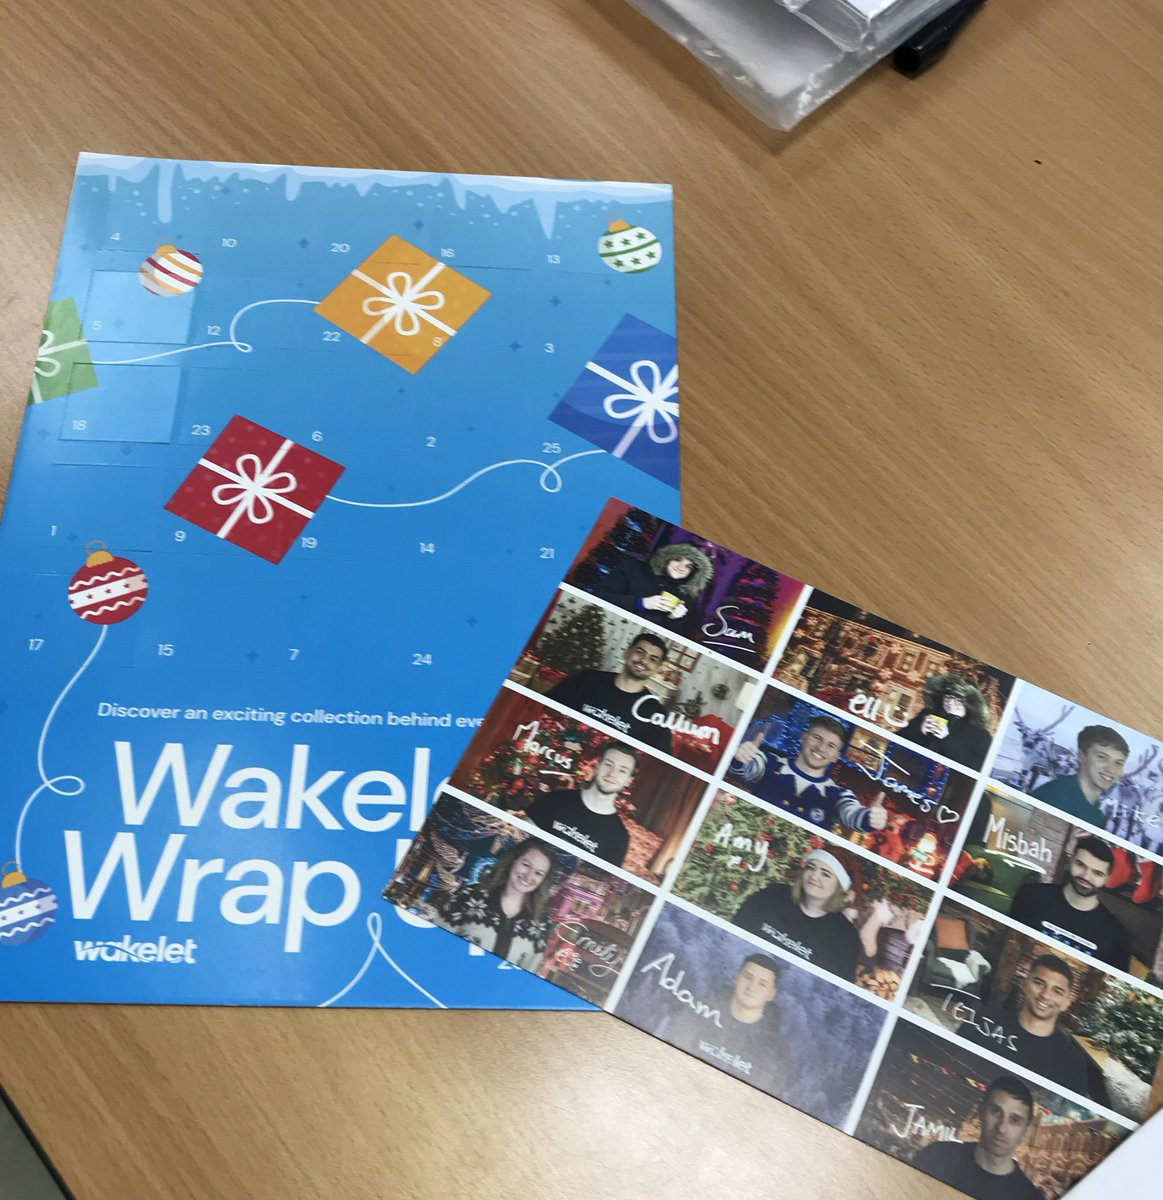 Thanks @wakelet looking forward to advent starting and opening the first door